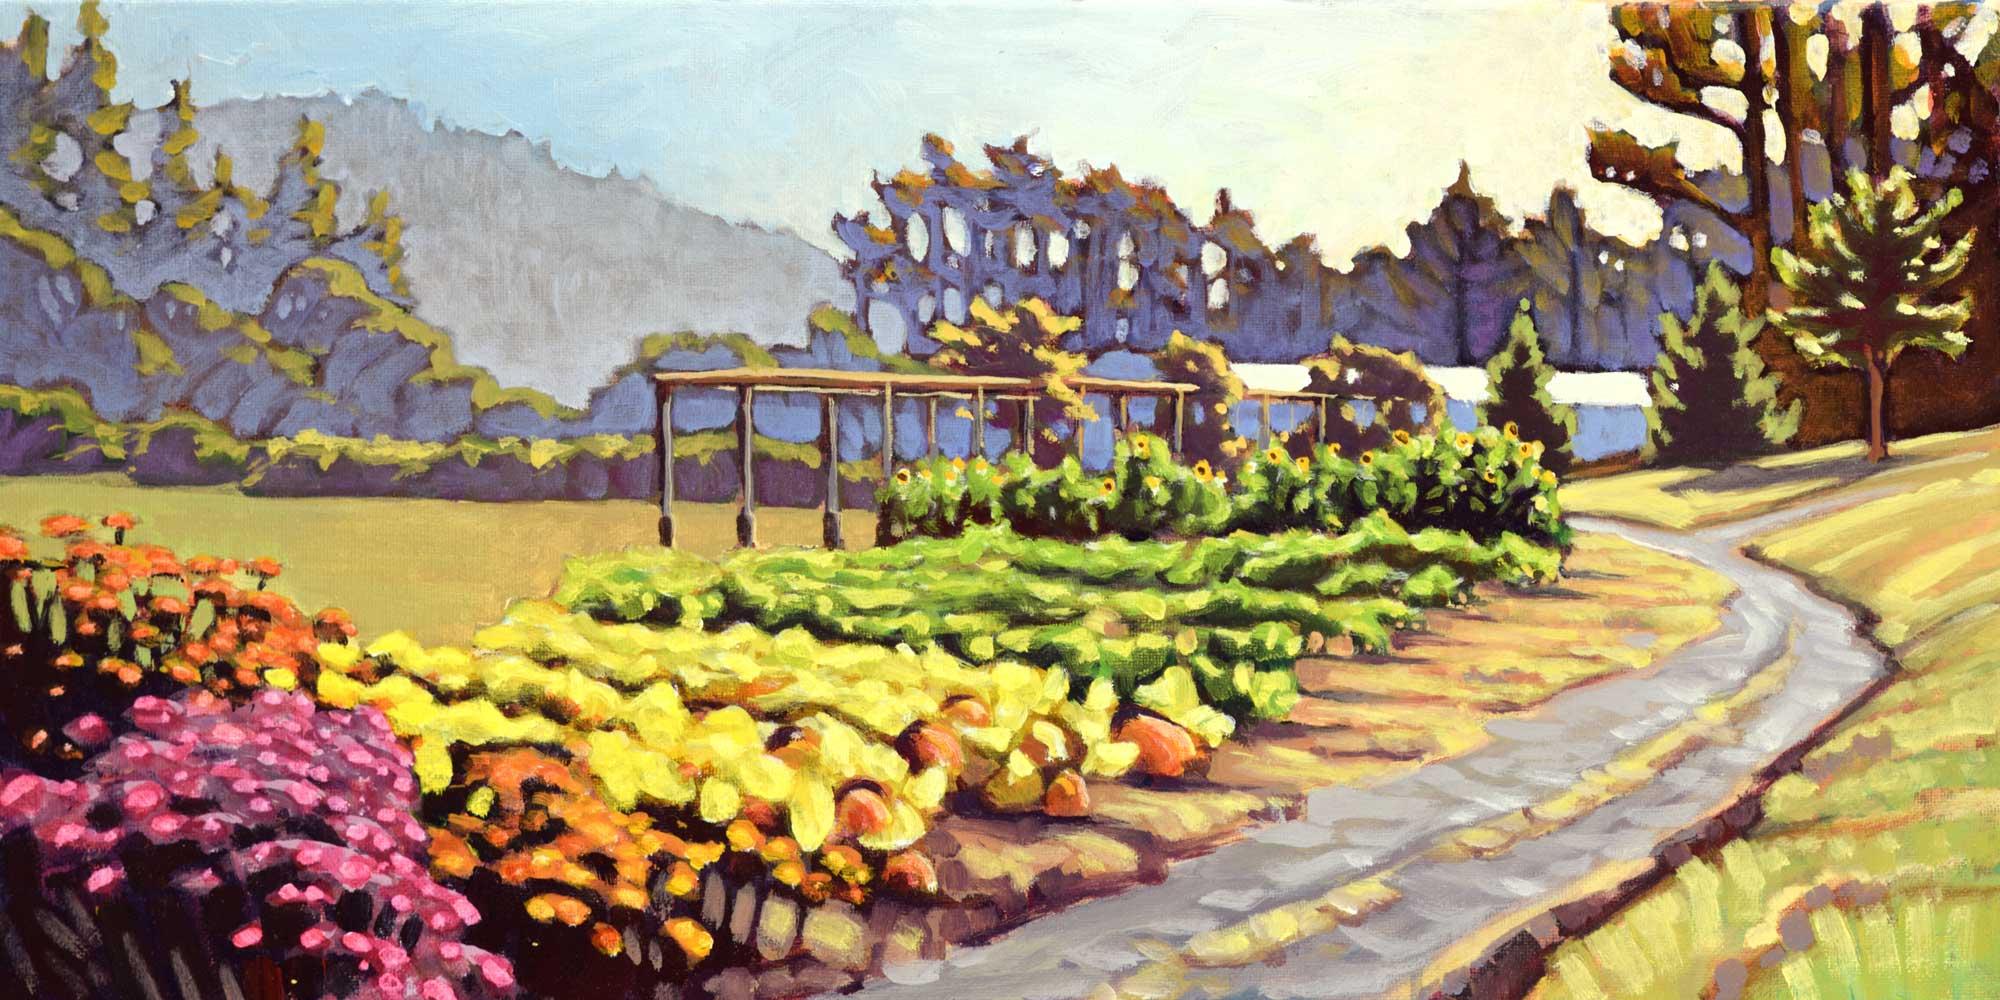 Plein air painting of the Humboldt Botanical Gardens in northern California